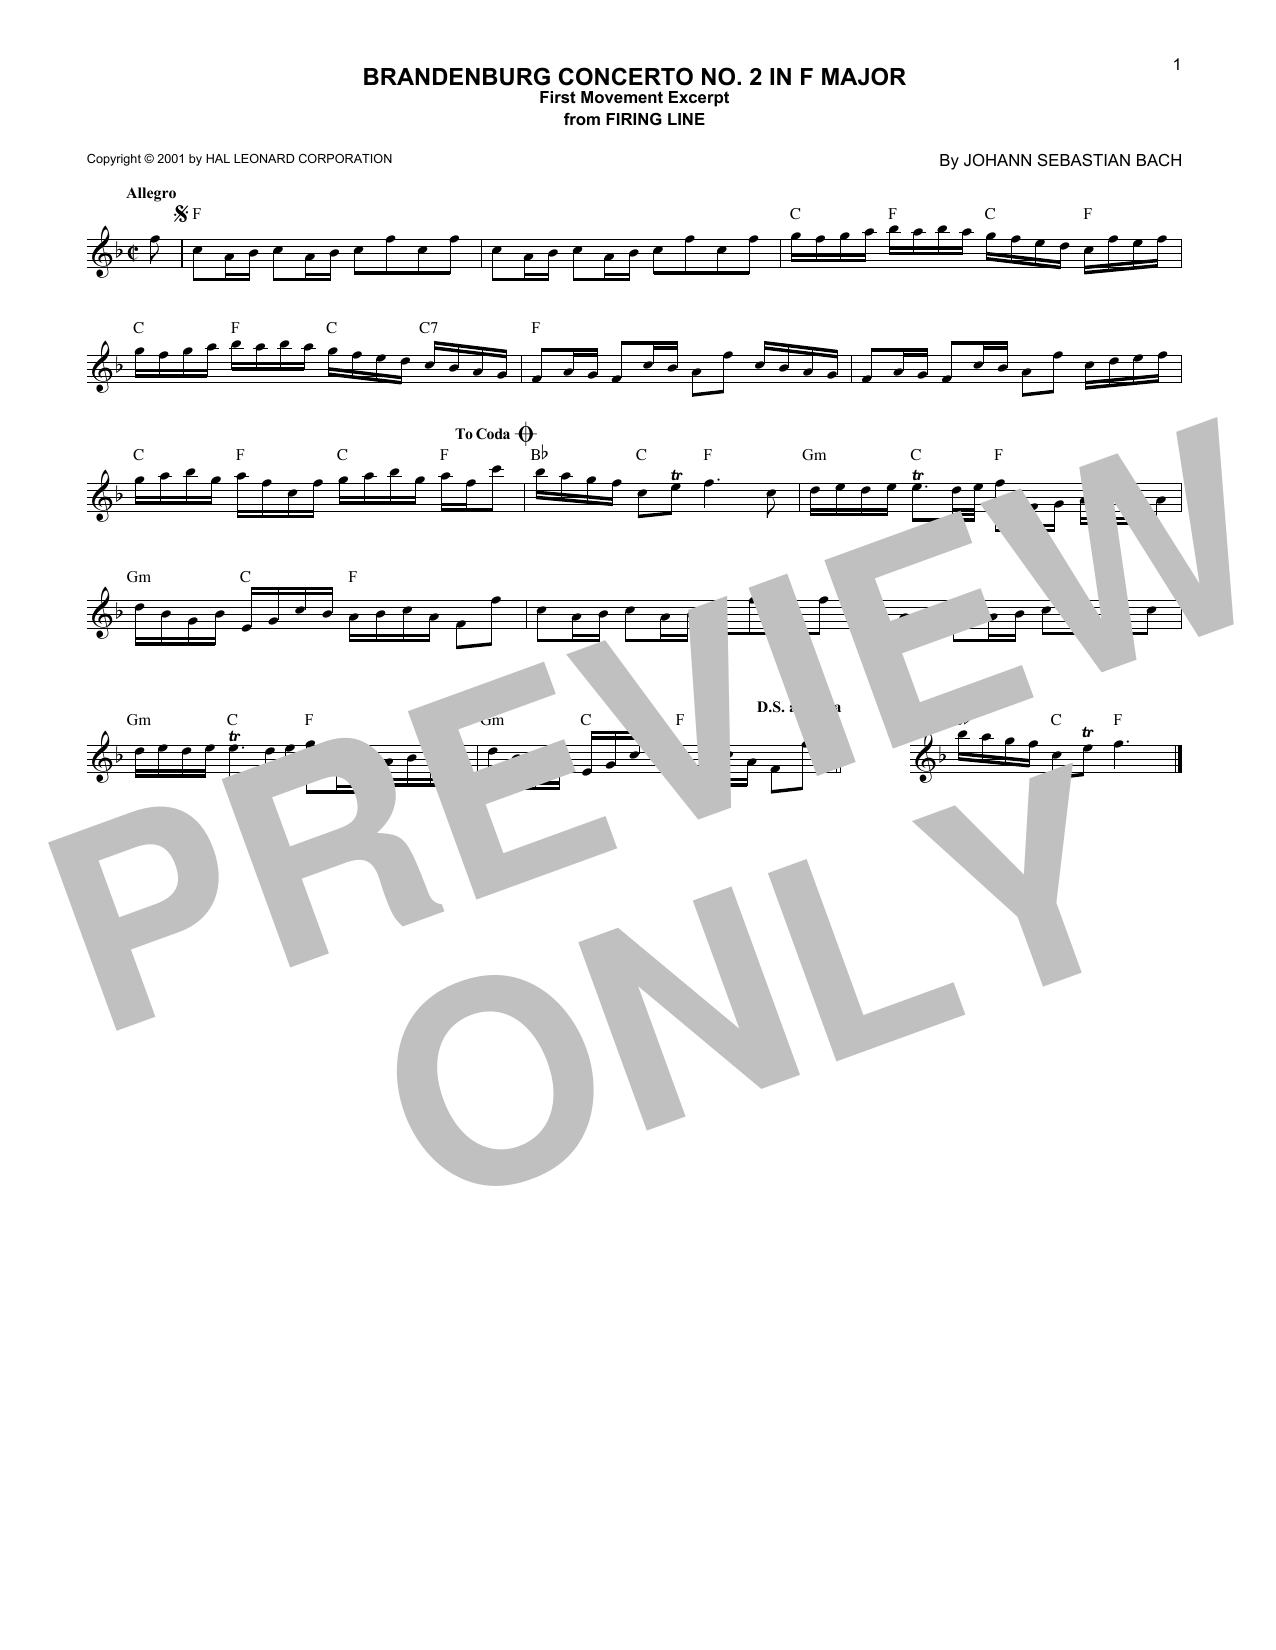 Download Johann Sebastian Bach 'Brandenburg Concerto No. 2 in F Major, First Movement Excerpt' Digital Sheet Music Notes & Chords and start playing in minutes